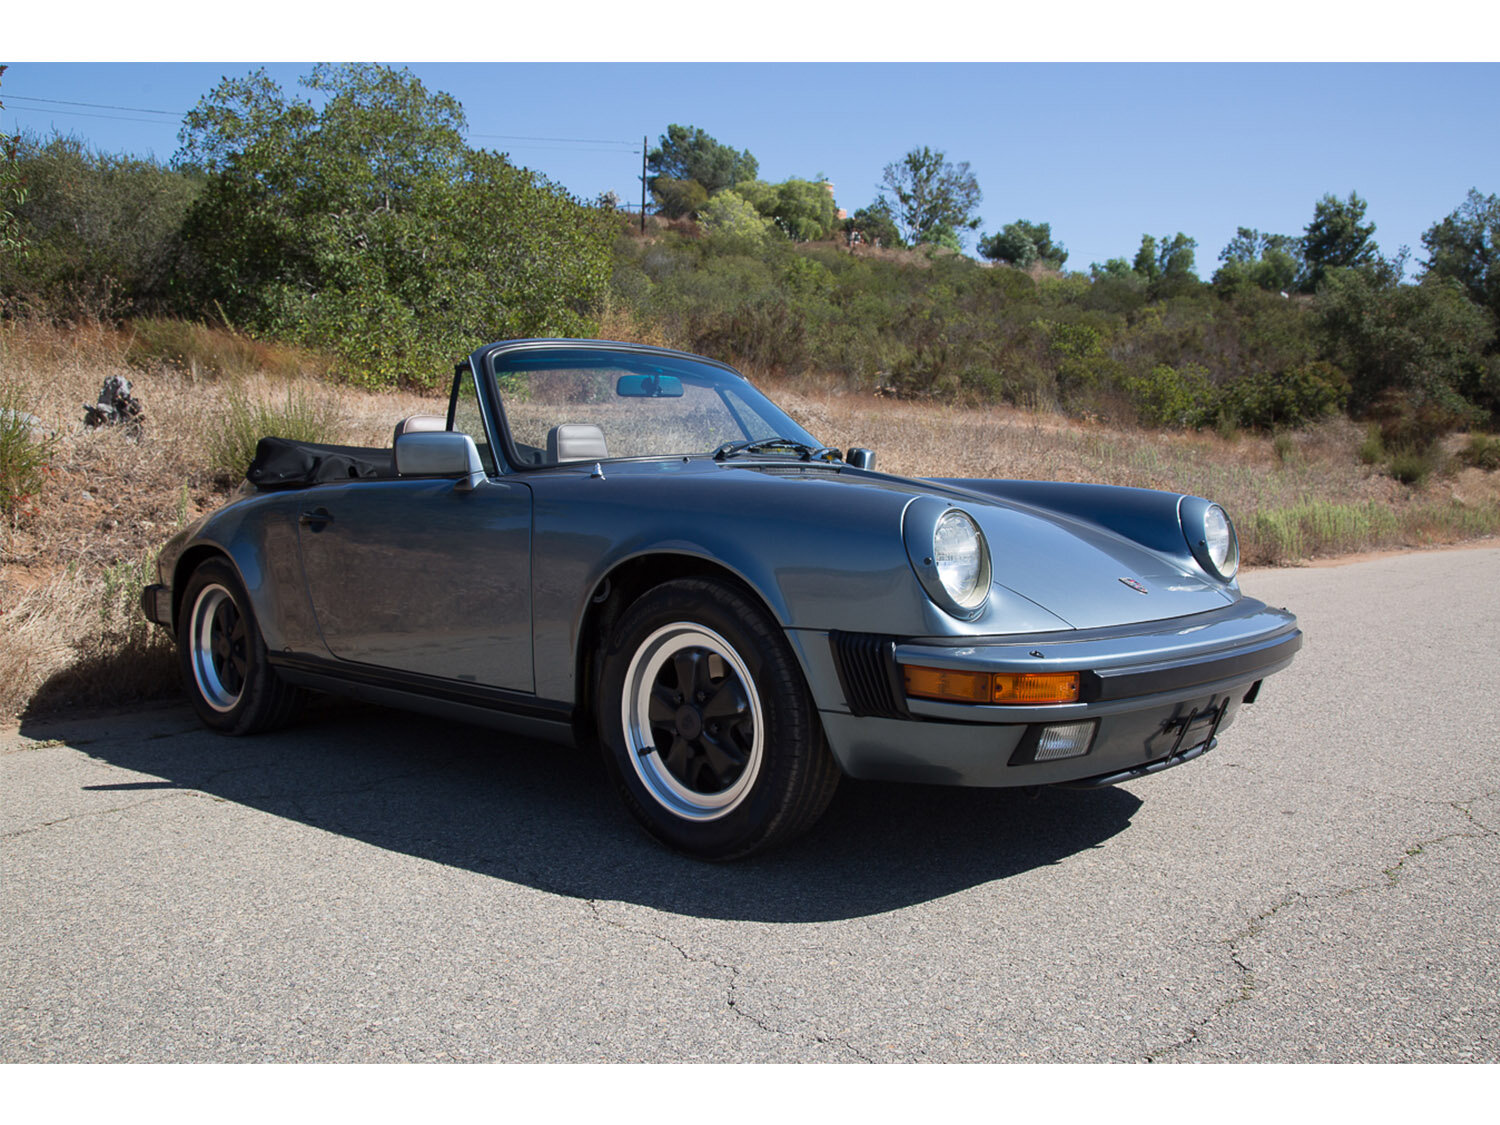 1984-carrera-cabriolet-slate-blue-911-sc-for-sale-makellos-classics_0001s_0000s_0031_1B7A6599.jpg